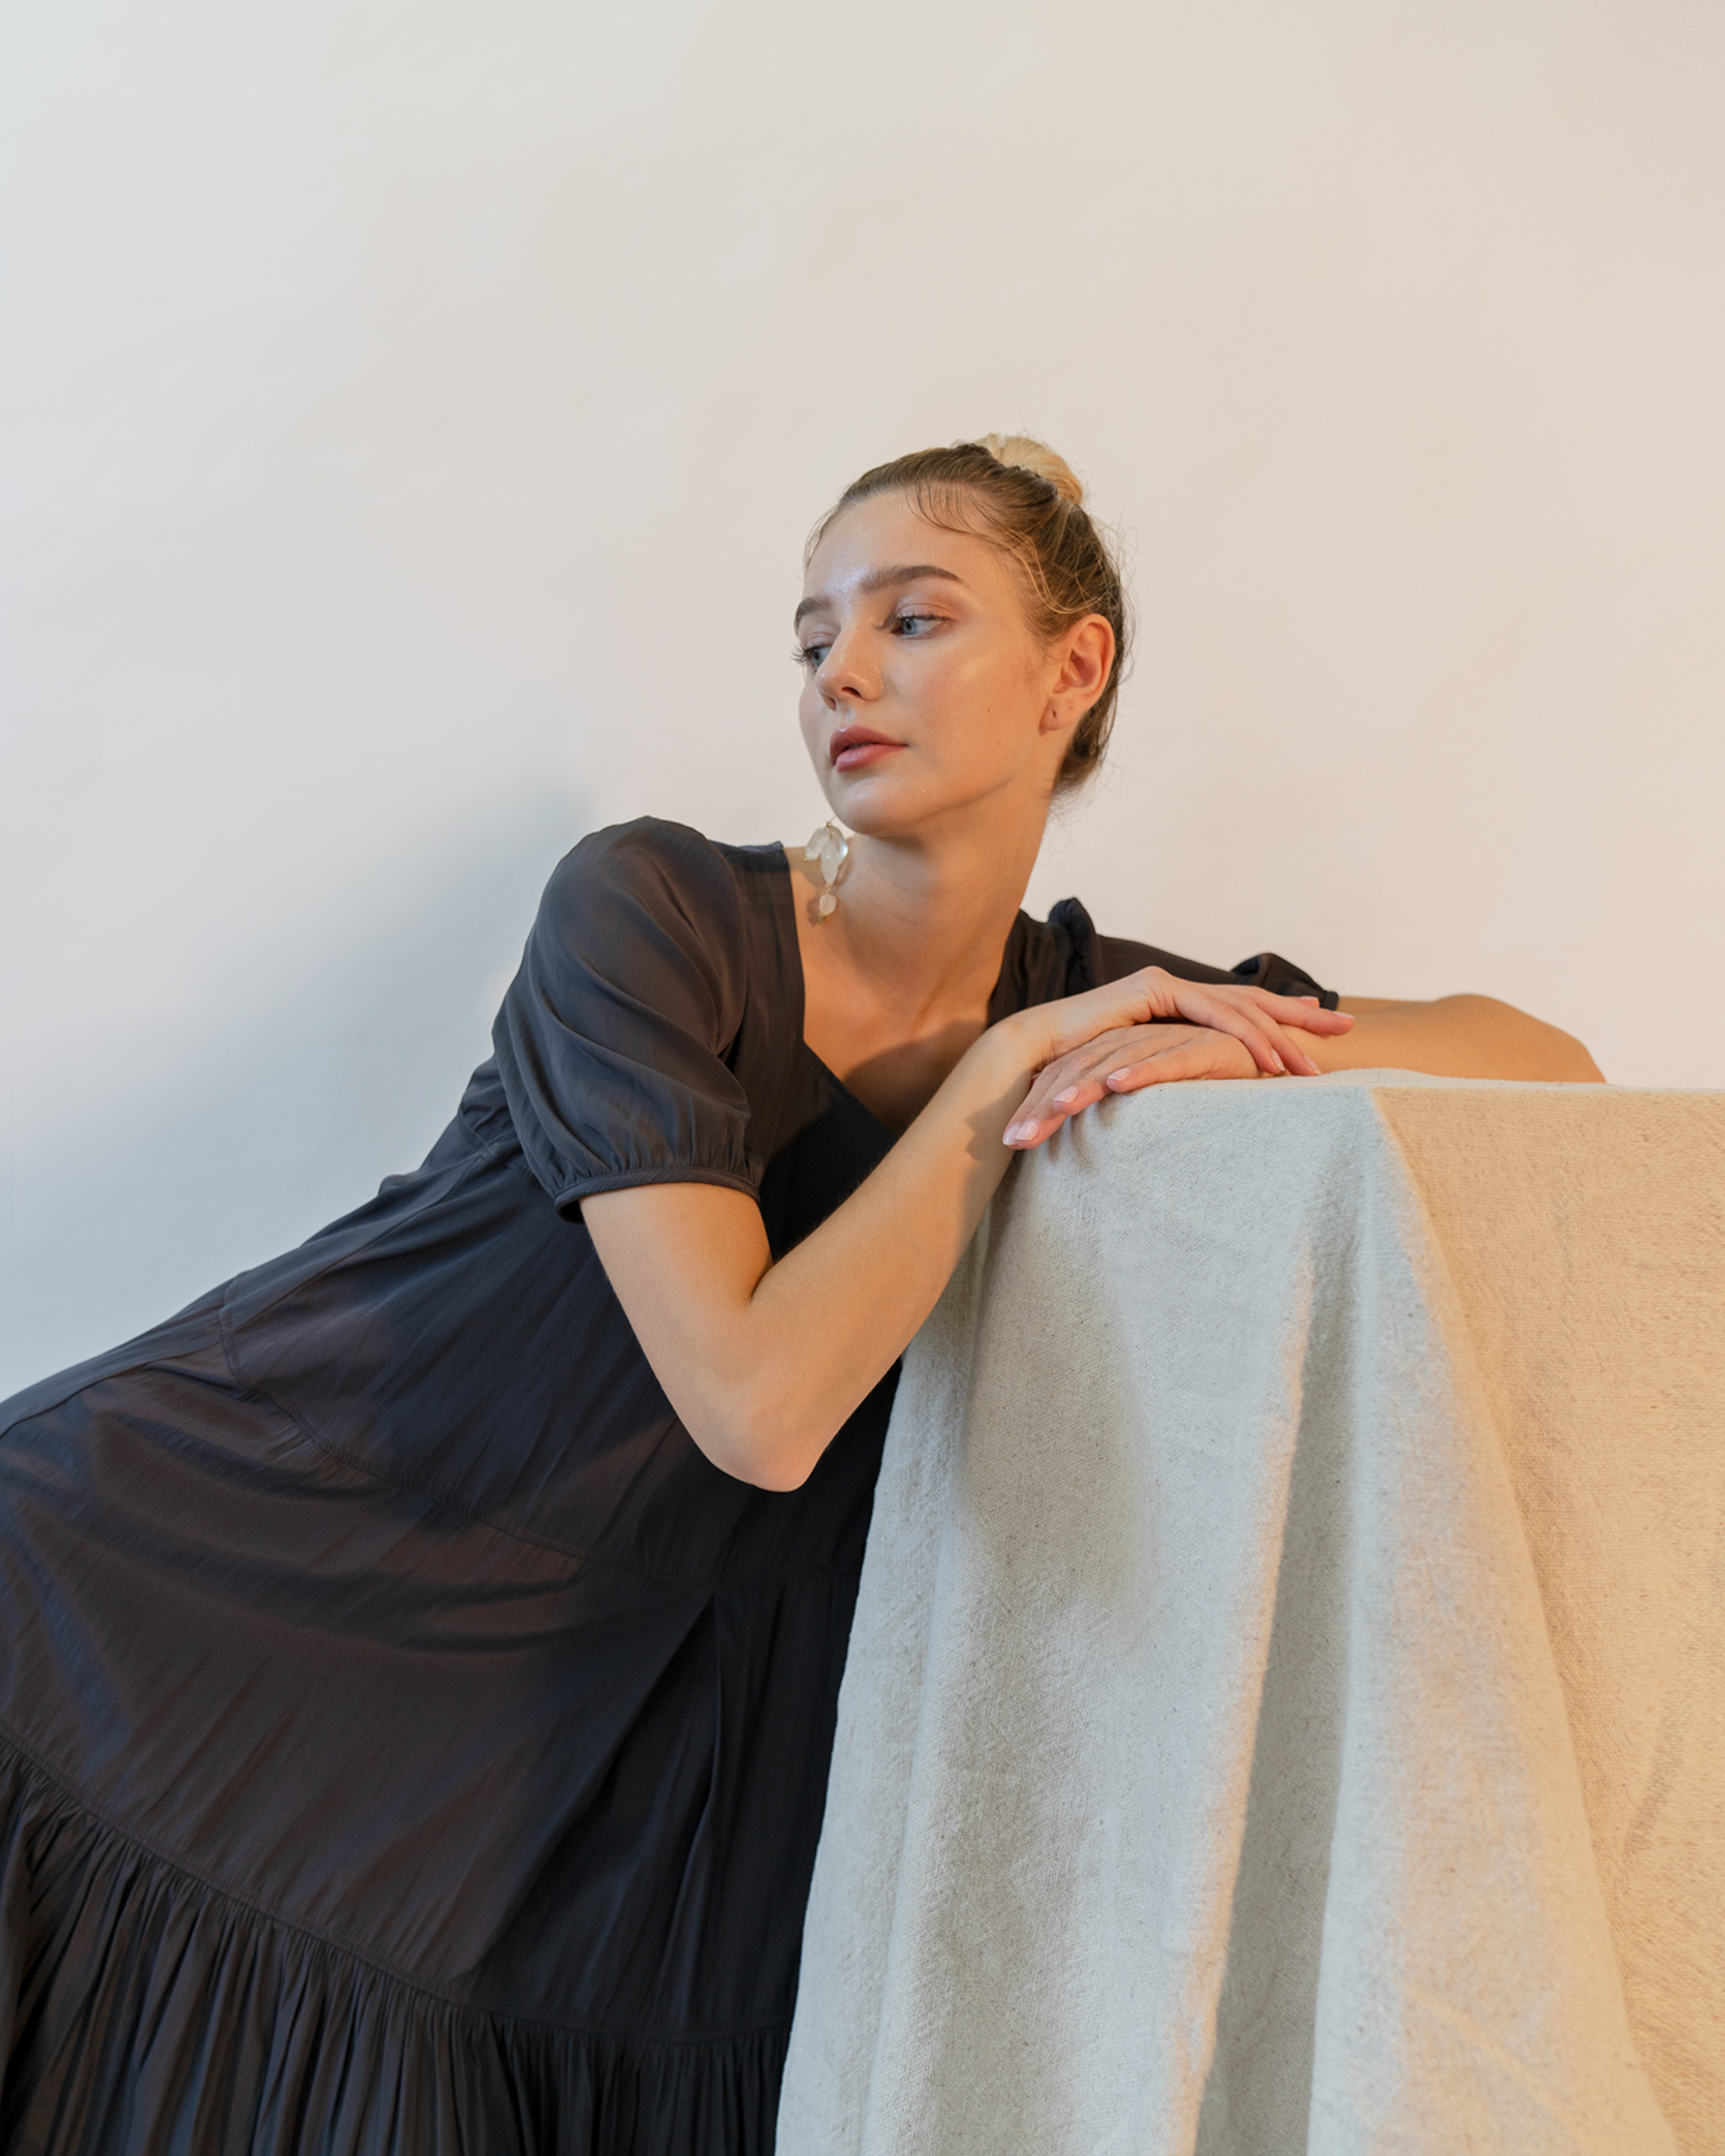 A woman is wearing a black tiered smock dress.